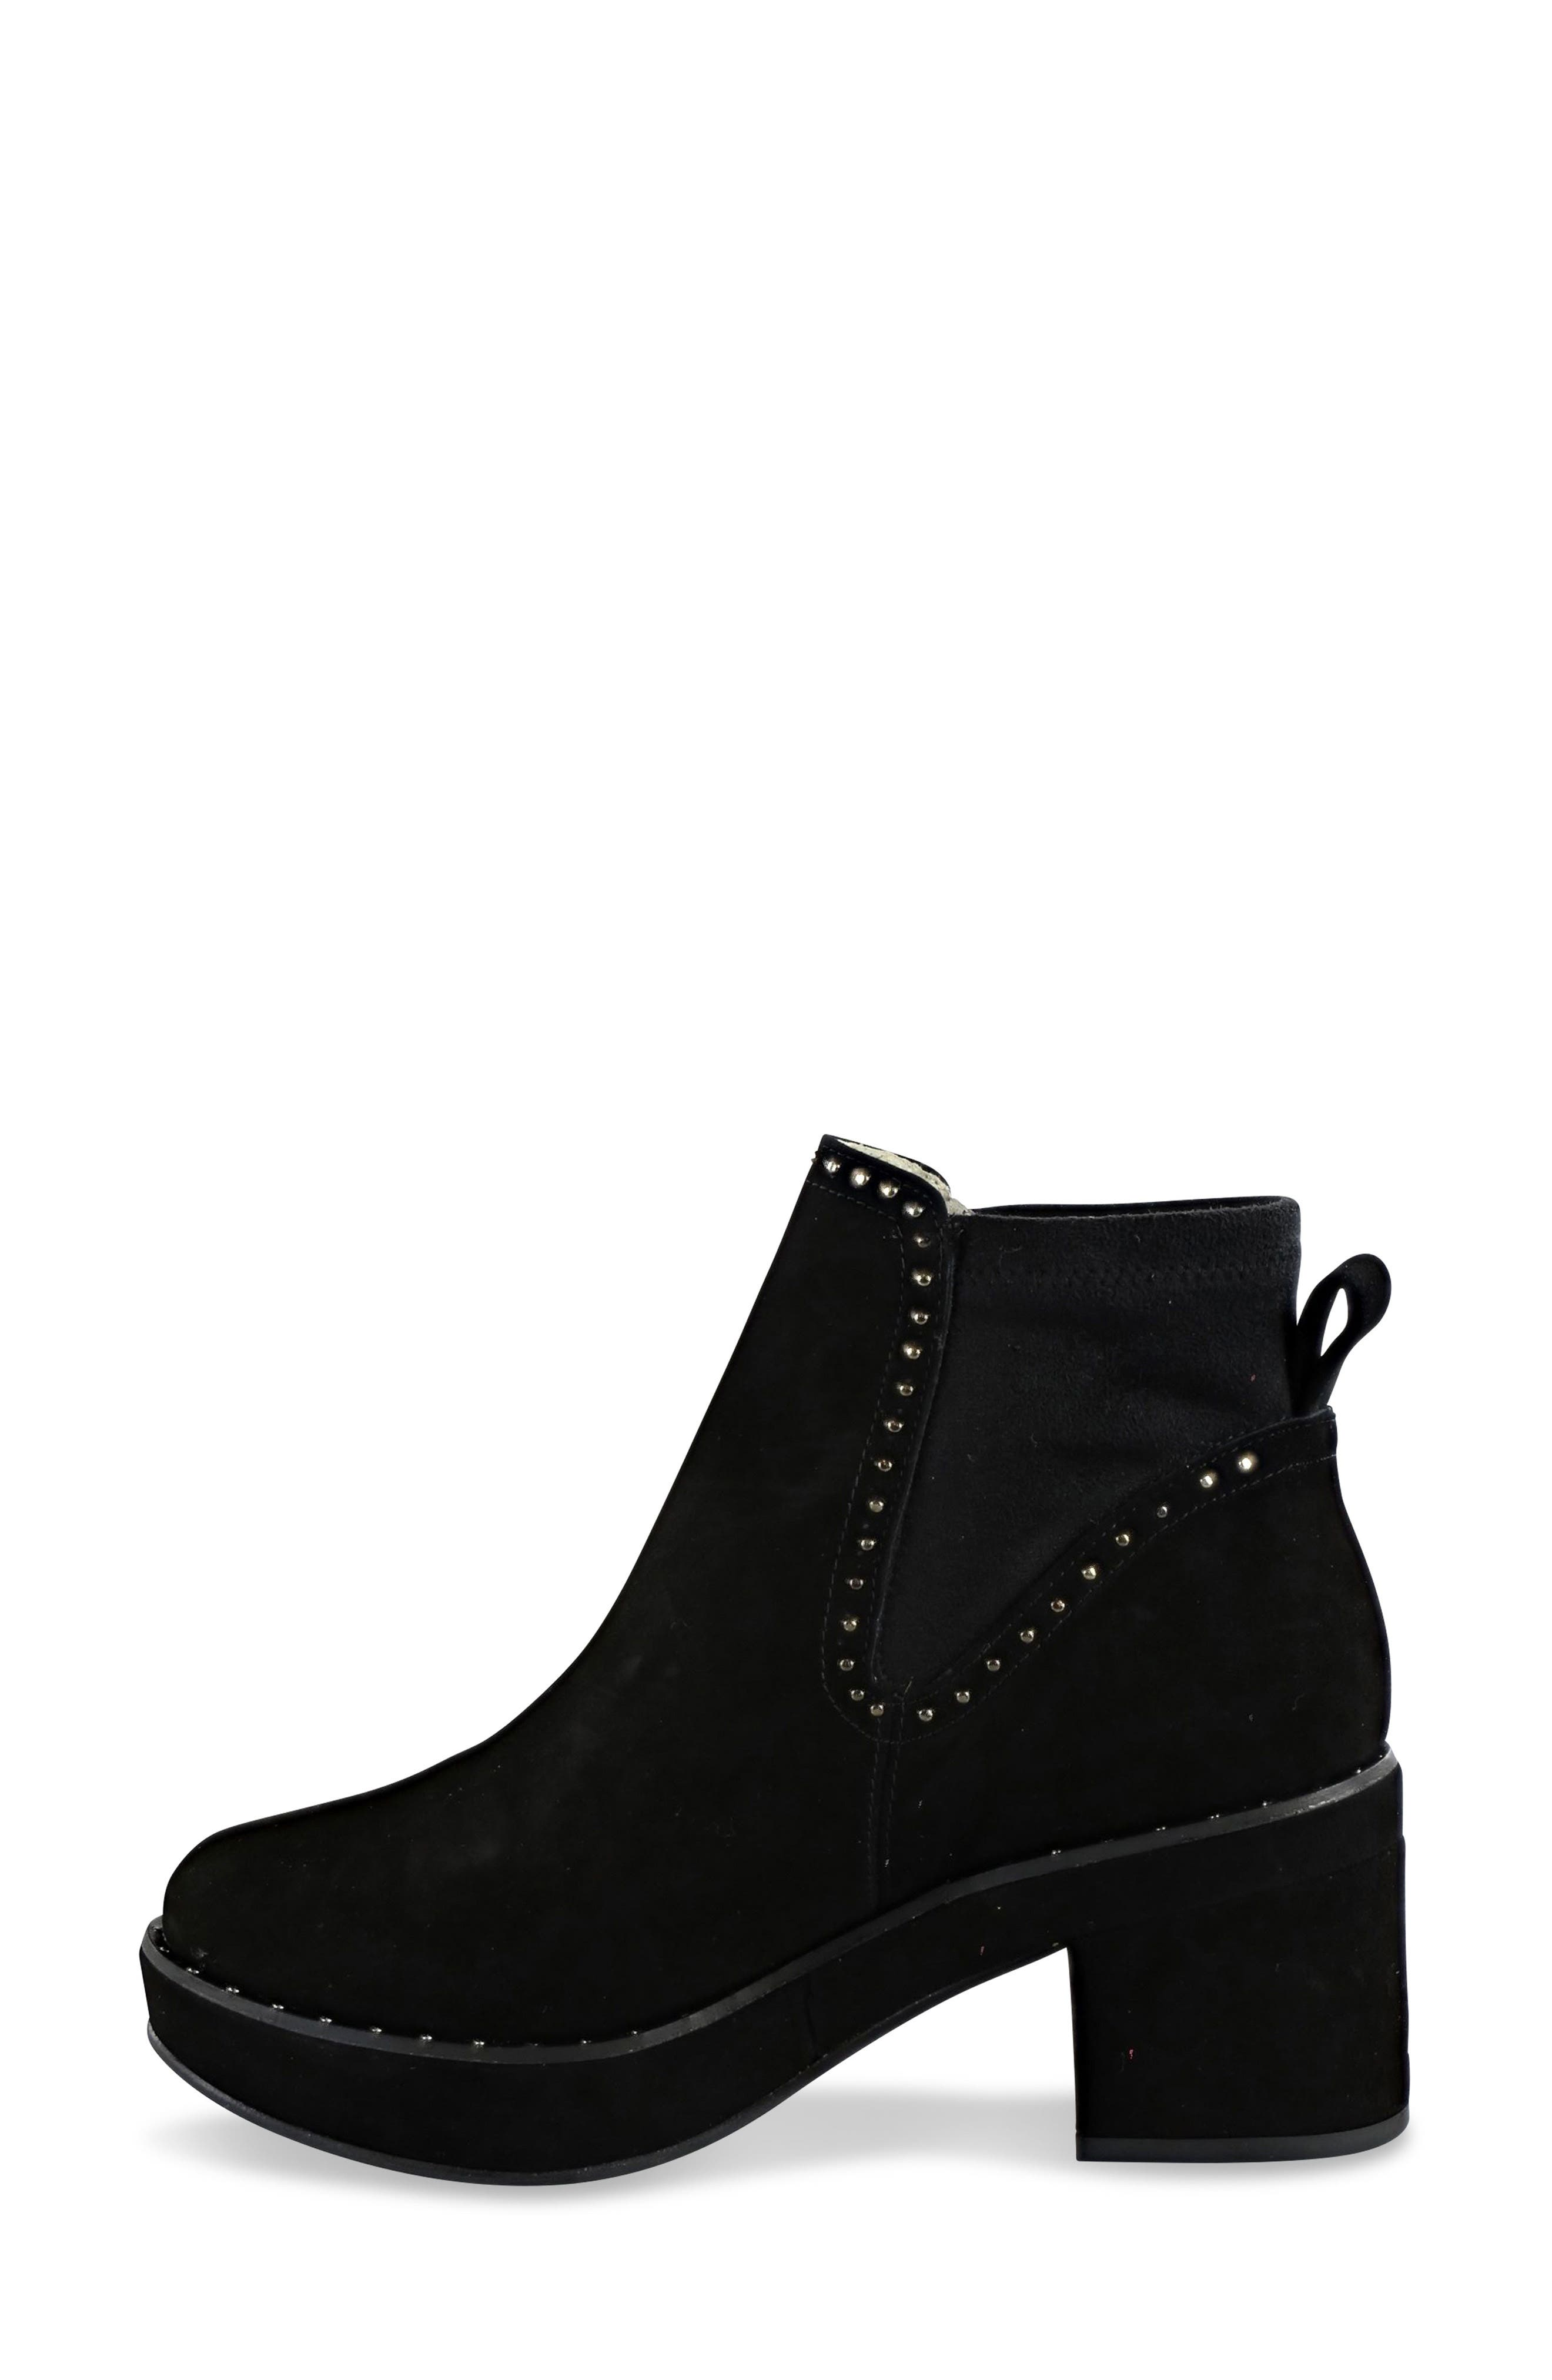 Darri Platform Bootie,                             Alternate thumbnail 3, color,                             002